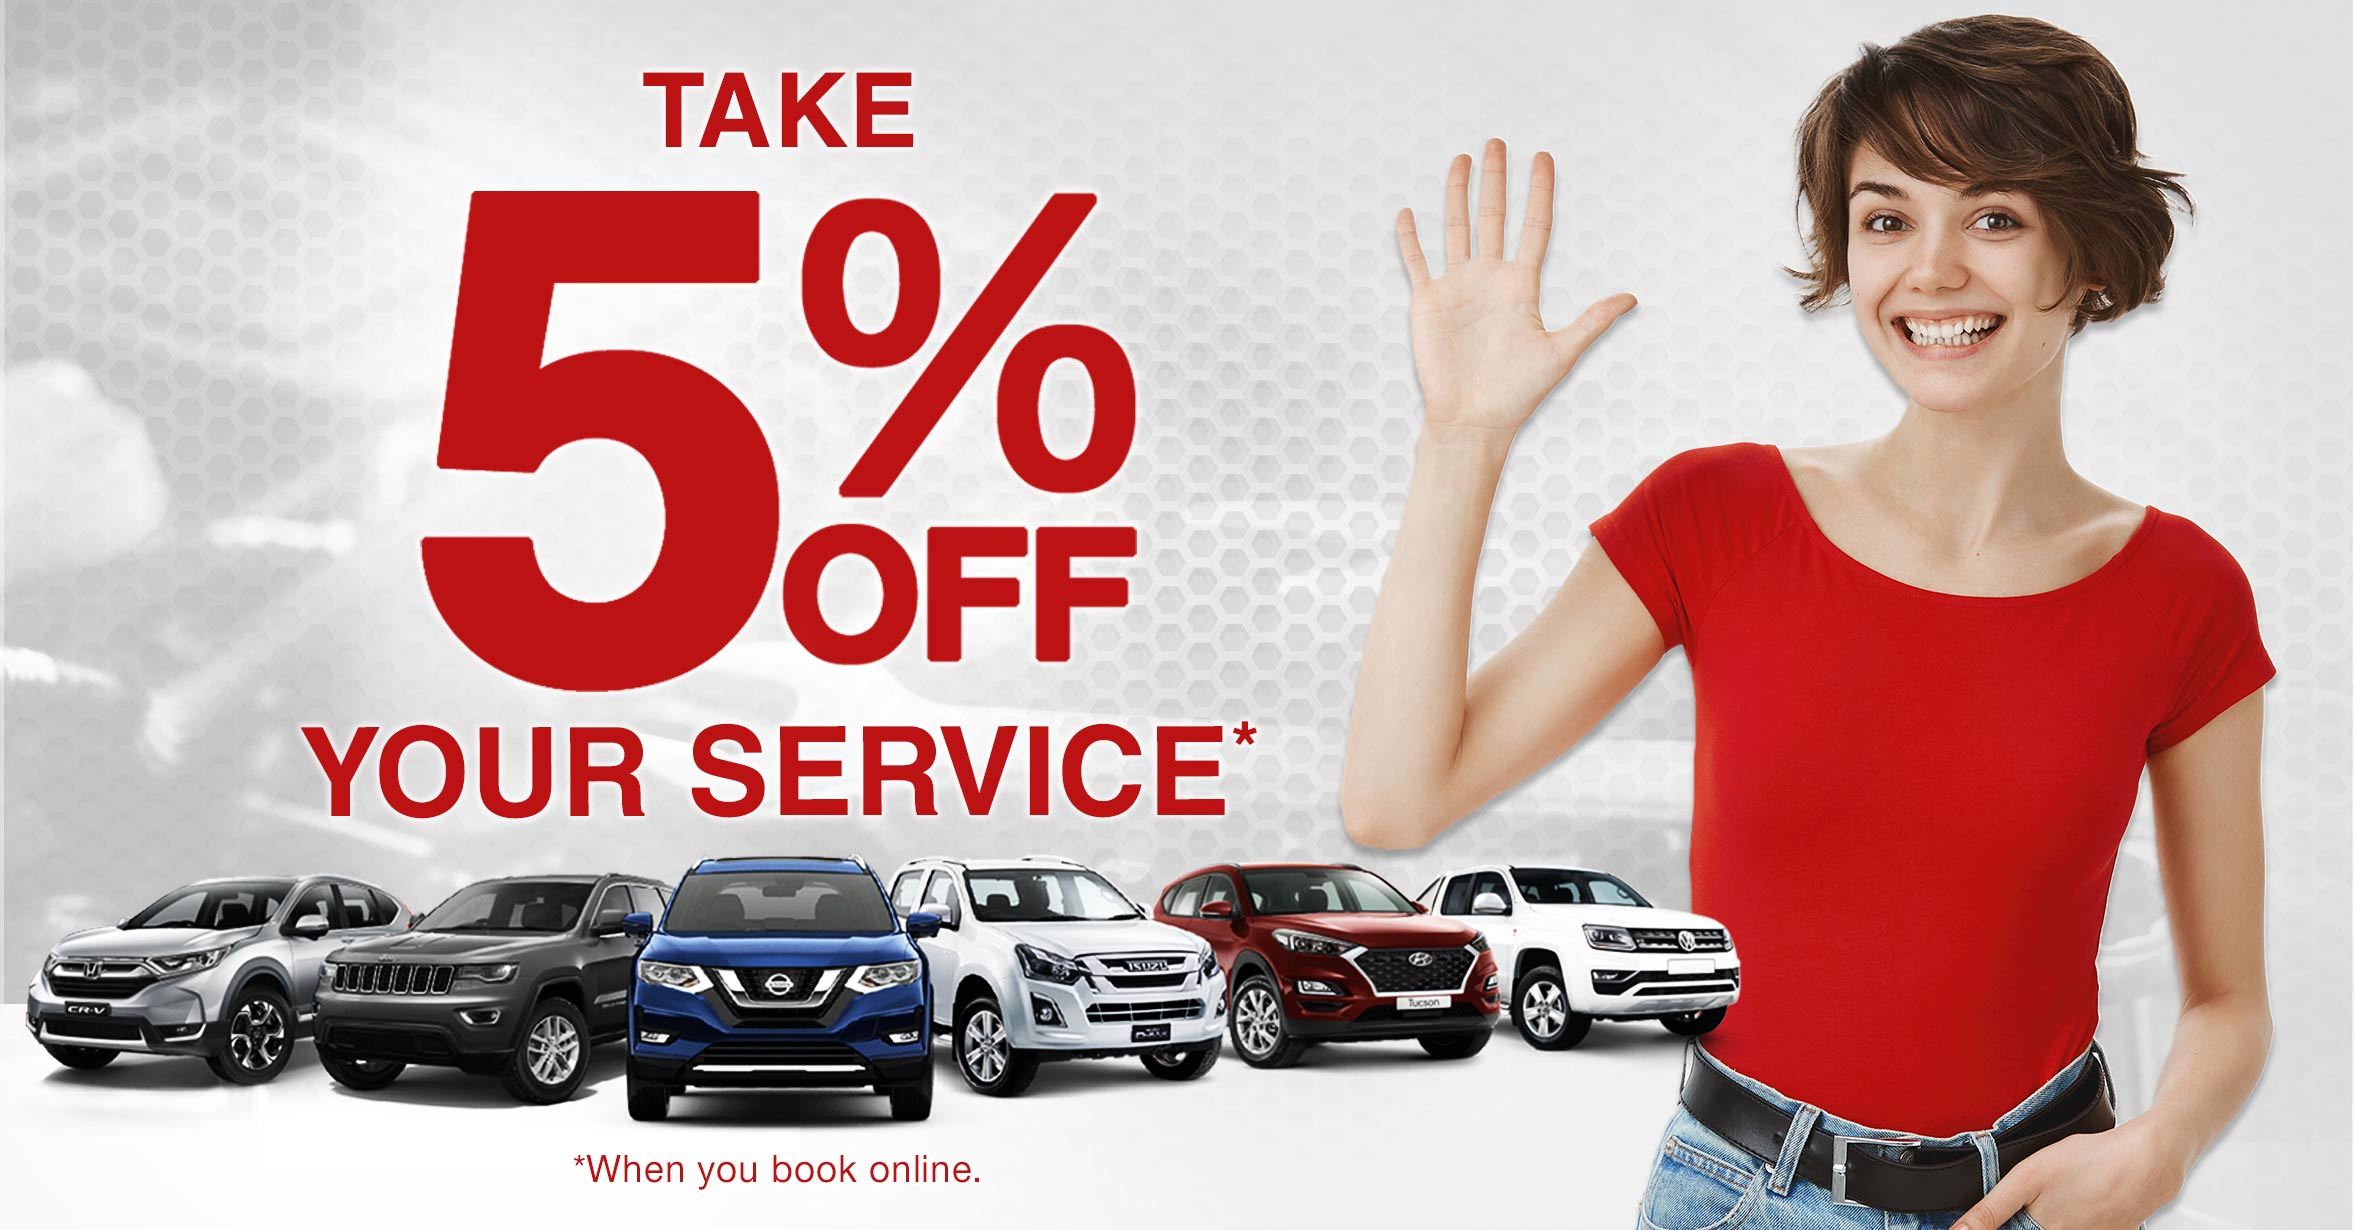 Take 5% off your service when you book online!*